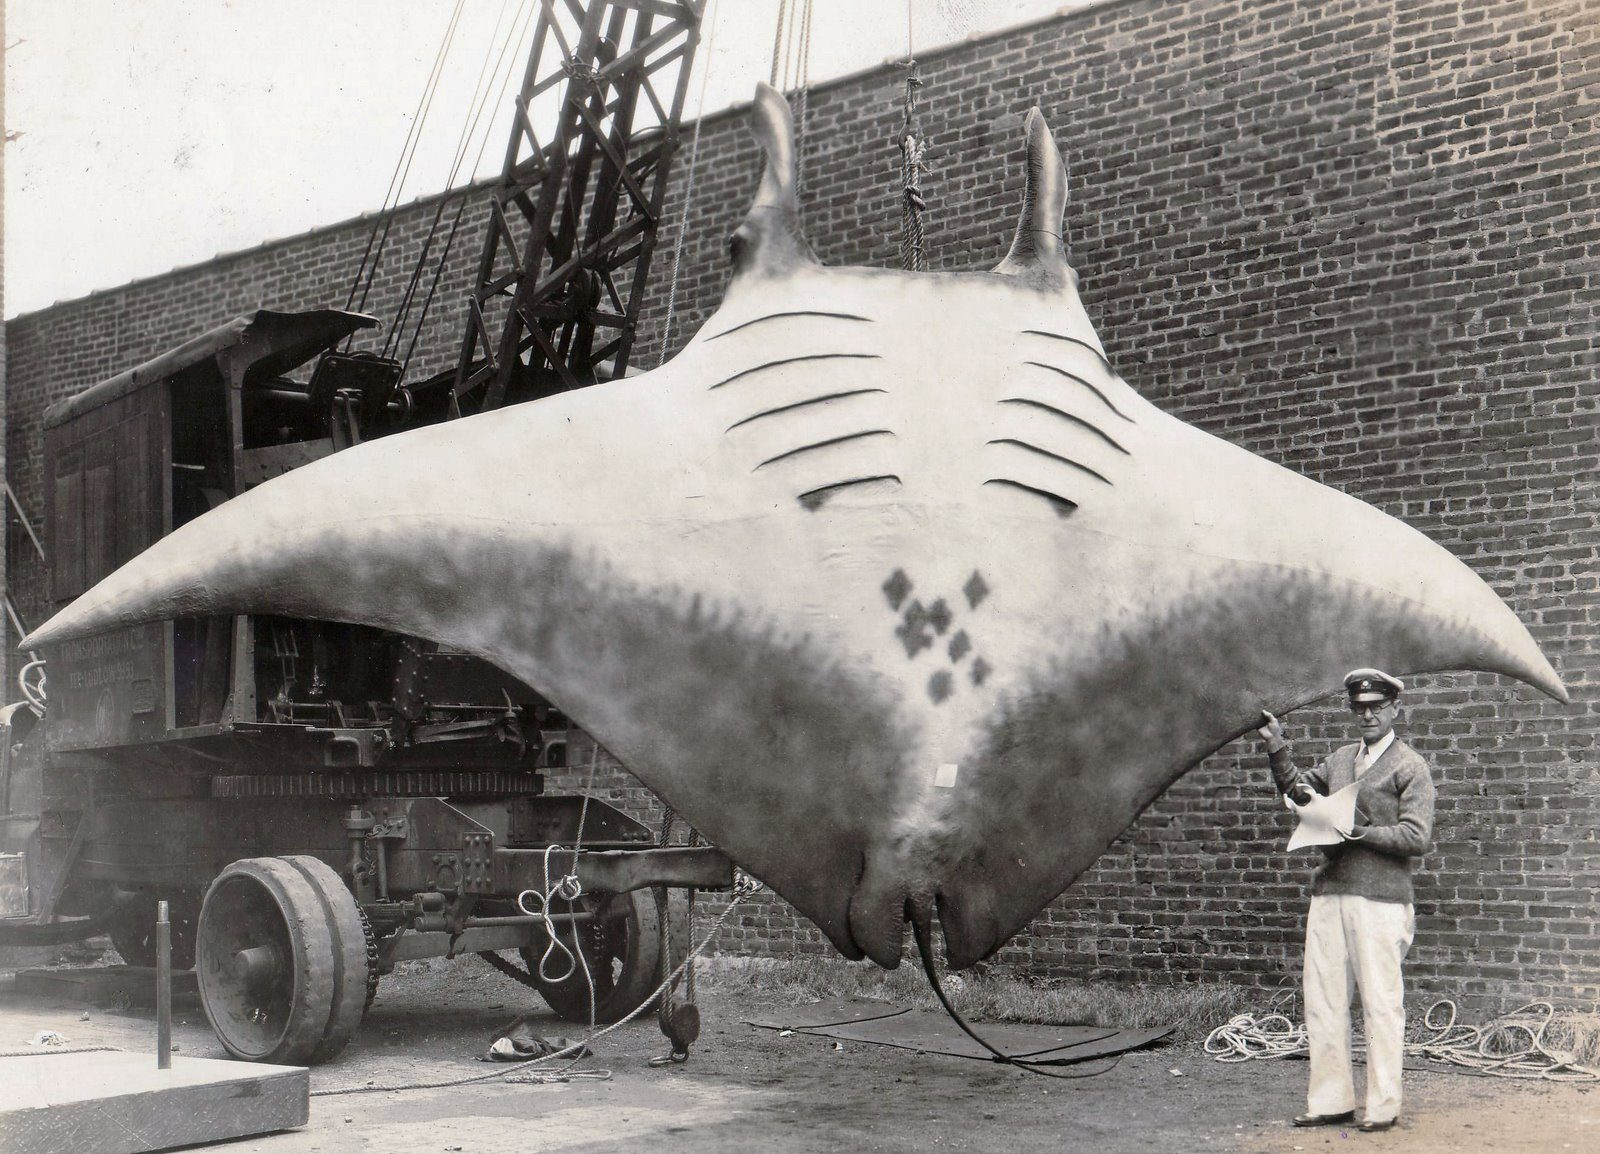 Does a Photograph Show a Real Giant Manta Ray?